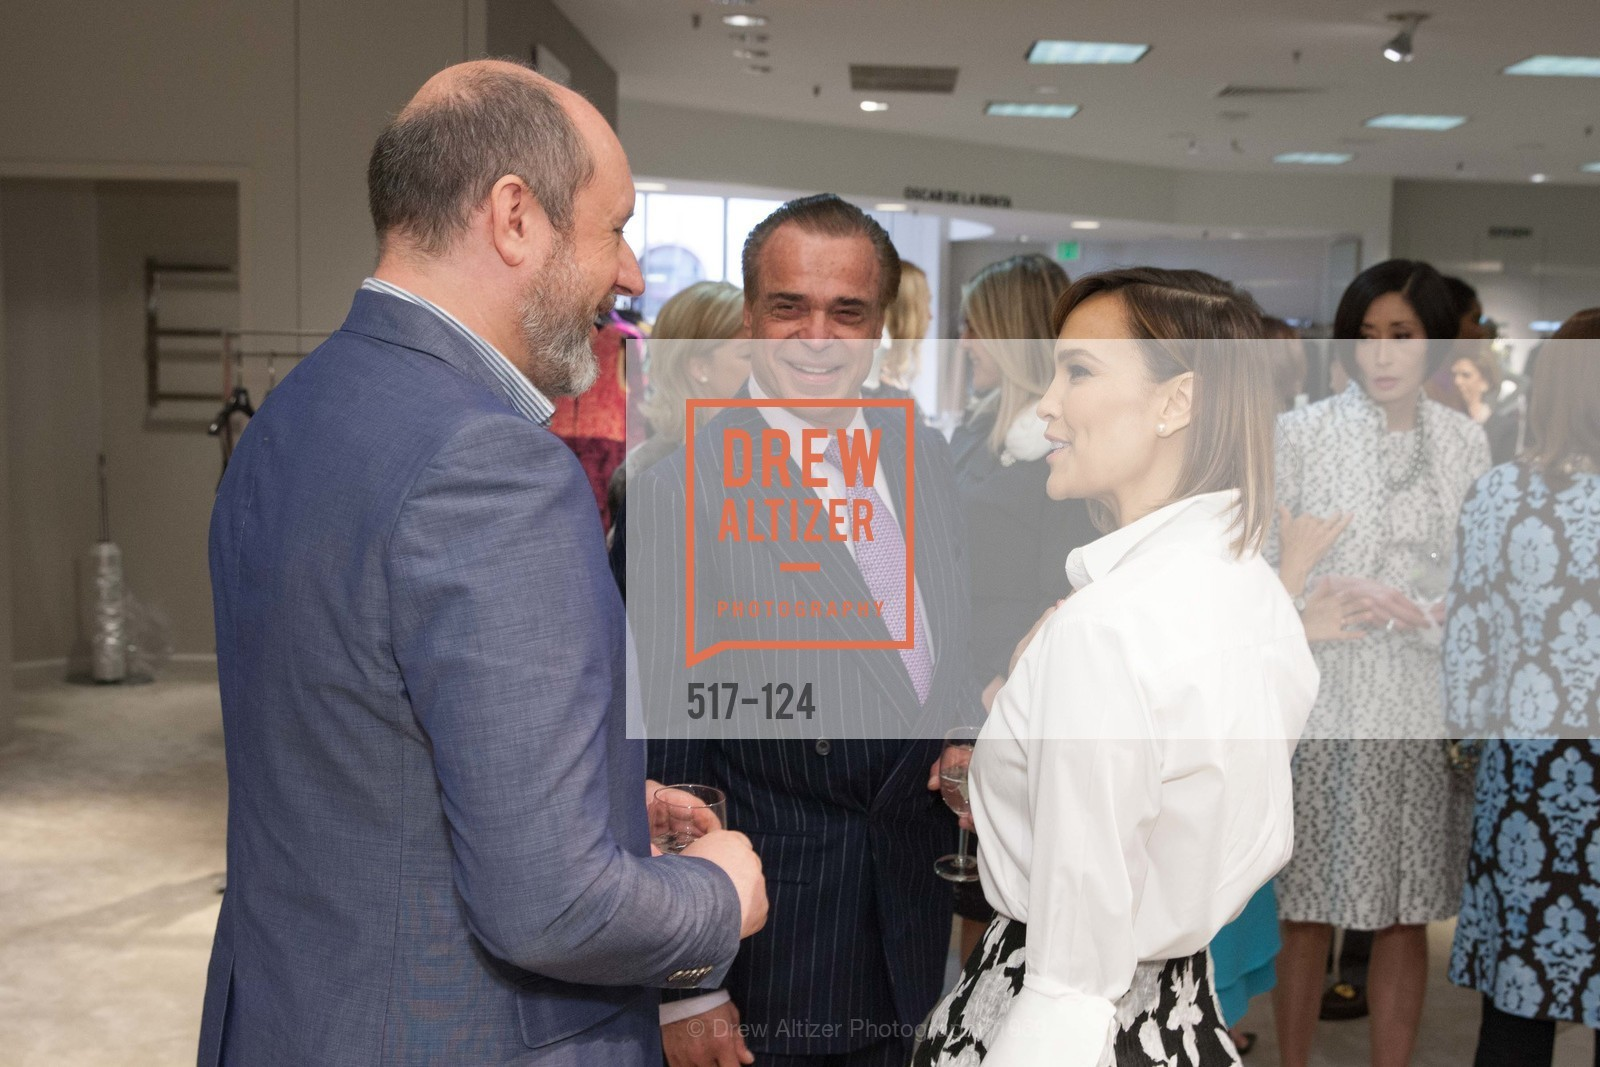 Peter Copping, Boaz Mazor, Lora DuBain, Saks Fifth Avenue hosts the Peter Copping Personal Appearance, Saks Fifth Ave. 384 Post St, May 20th, 2015,Drew Altizer, Drew Altizer Photography, full-service agency, private events, San Francisco photographer, photographer california